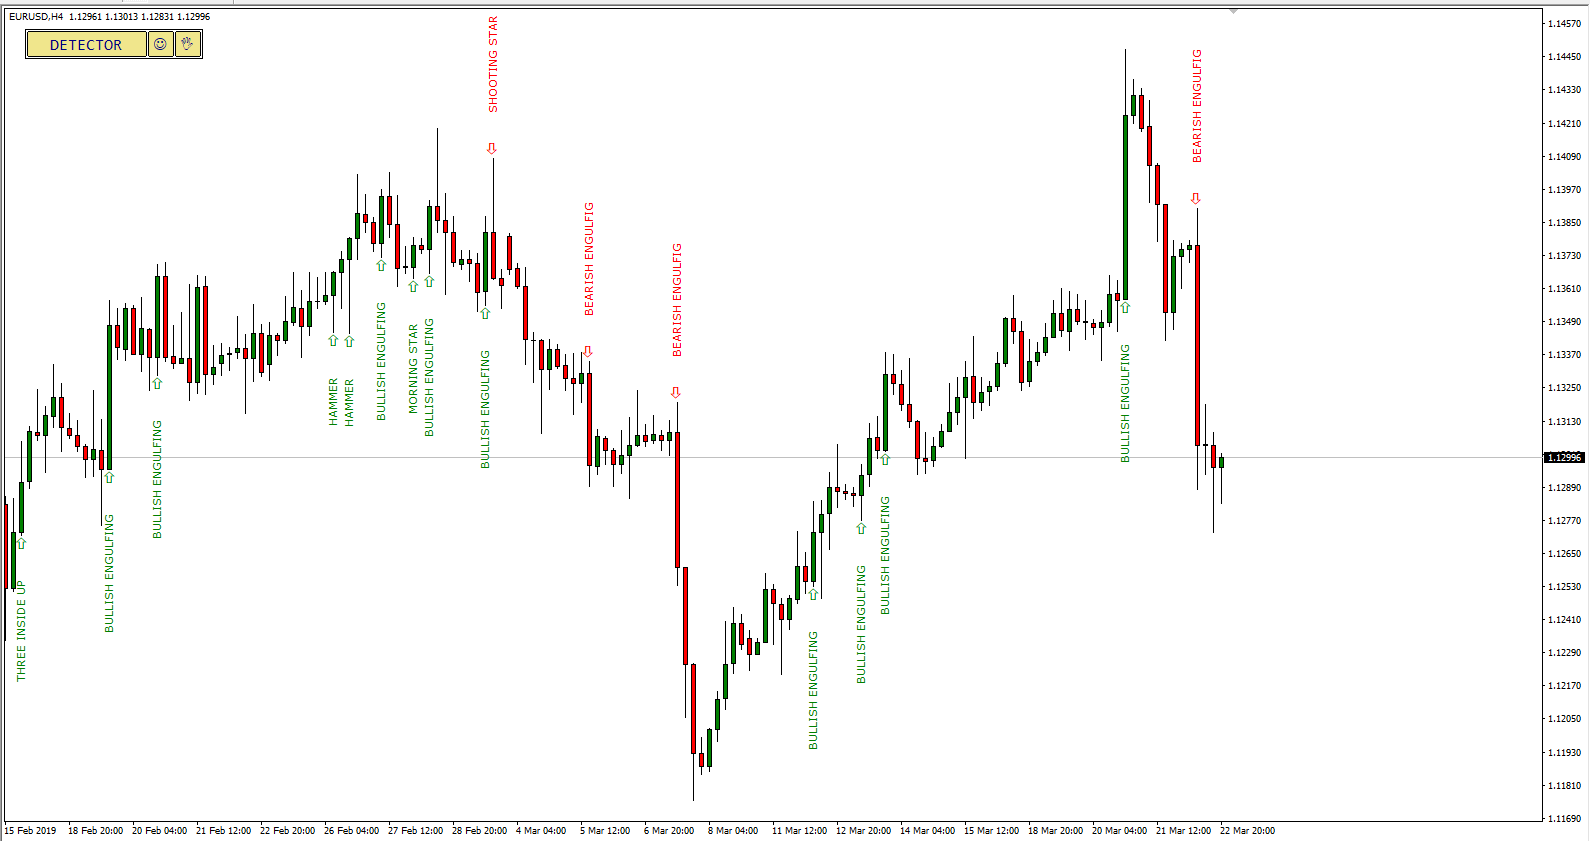 MT4 Candlestick Pattern Indicator Detecting Formations on EUR/USD Chart